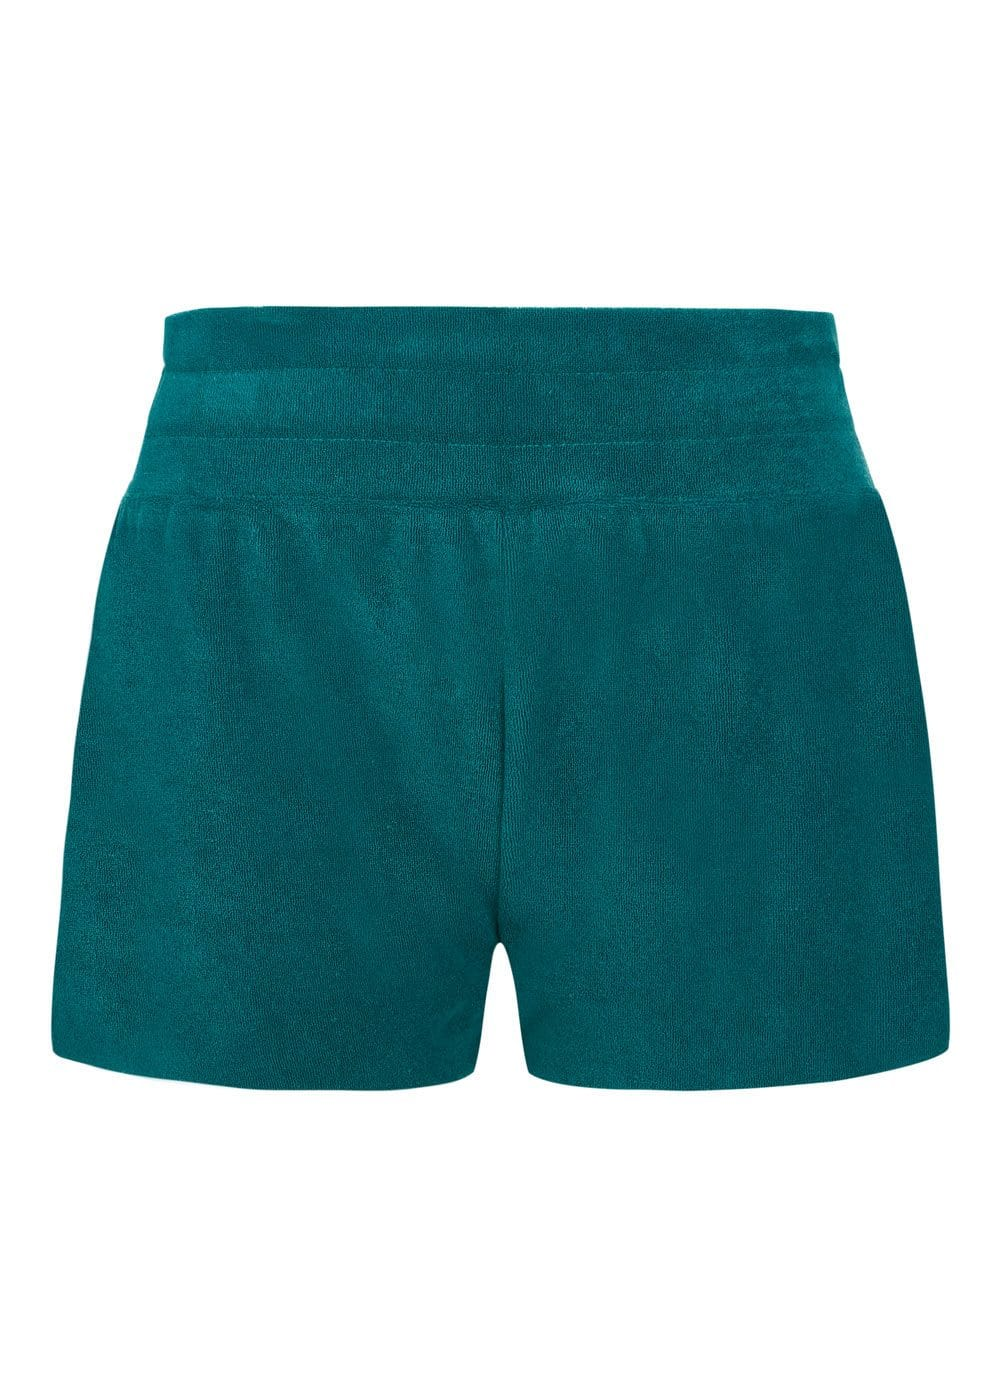 Girls Teal Terry Shorts - Front